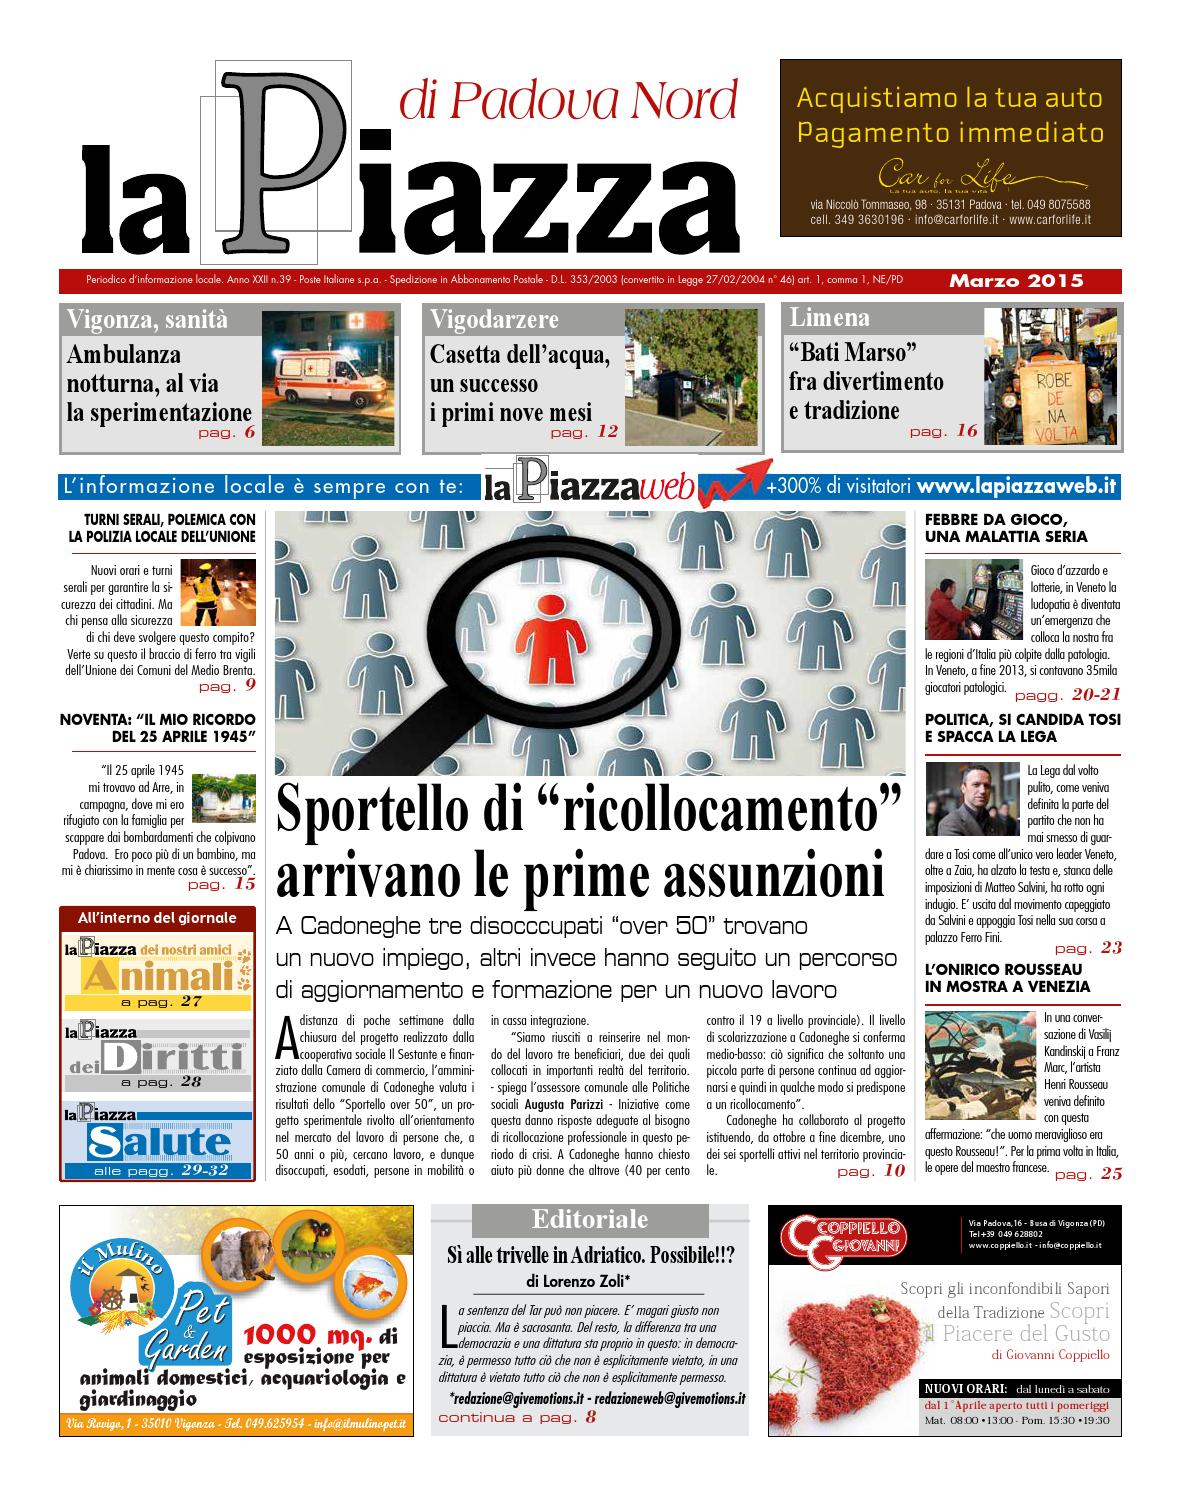 Padova nord marz2015 n39 by lapiazza give emotions - issuu 8512ba6c7330